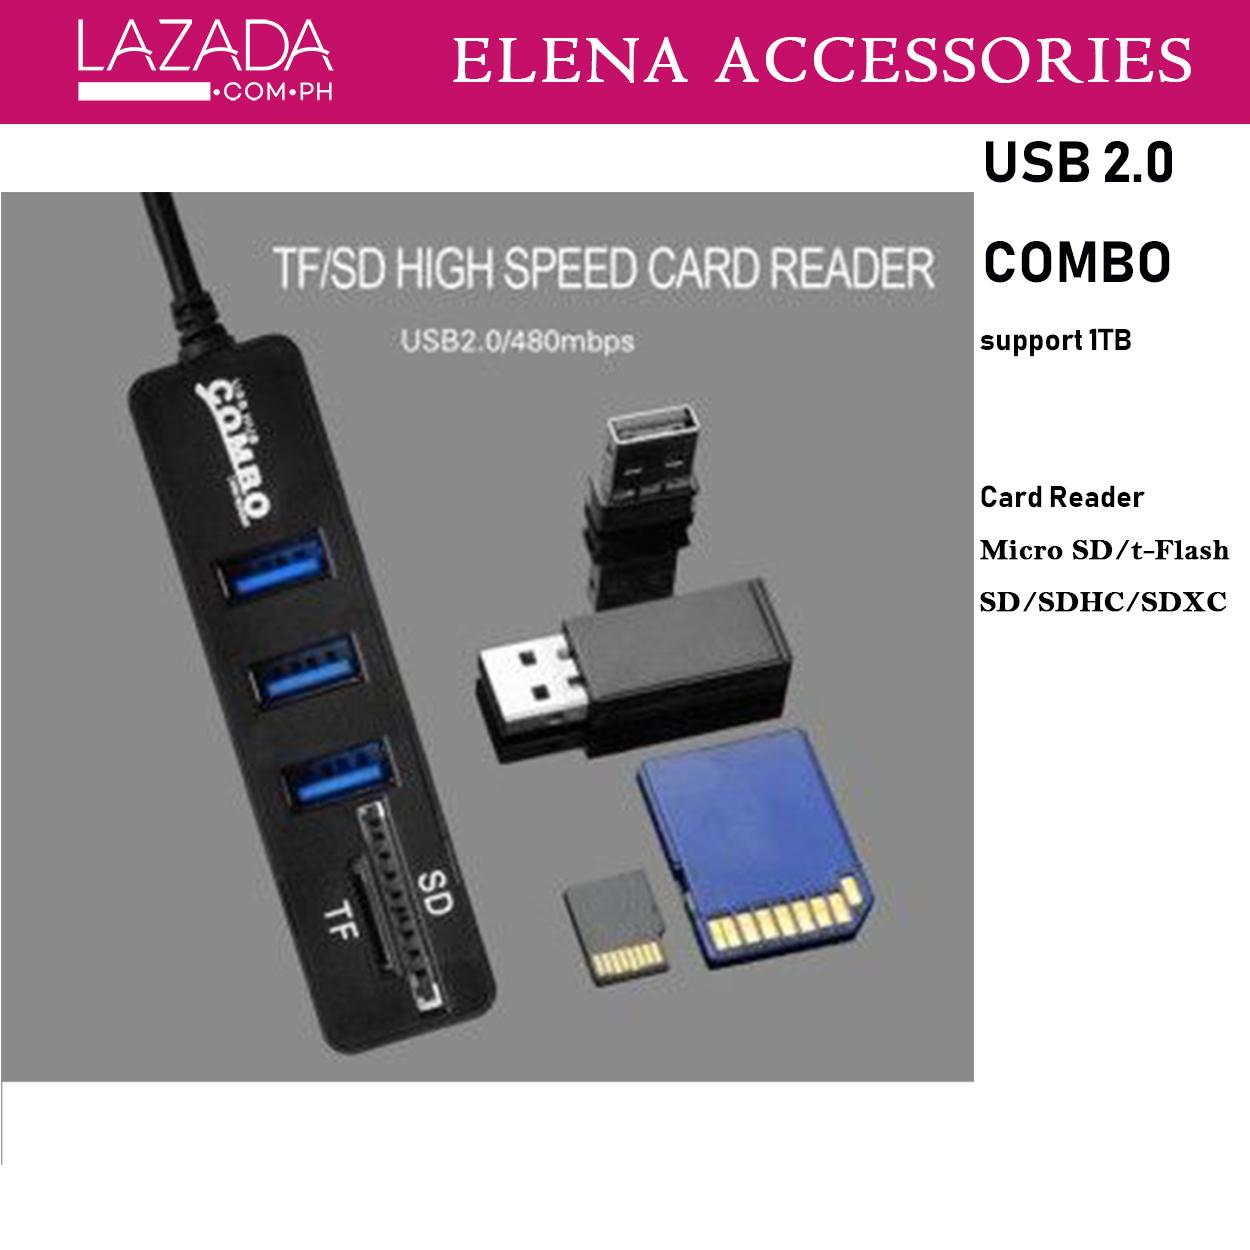 Usb Hub For Sale Port Prices Brands Specs In W Auto Power On Elena Accessories Mini 3n1 20 Combo With Universal 2n1 Micro Tf Sd